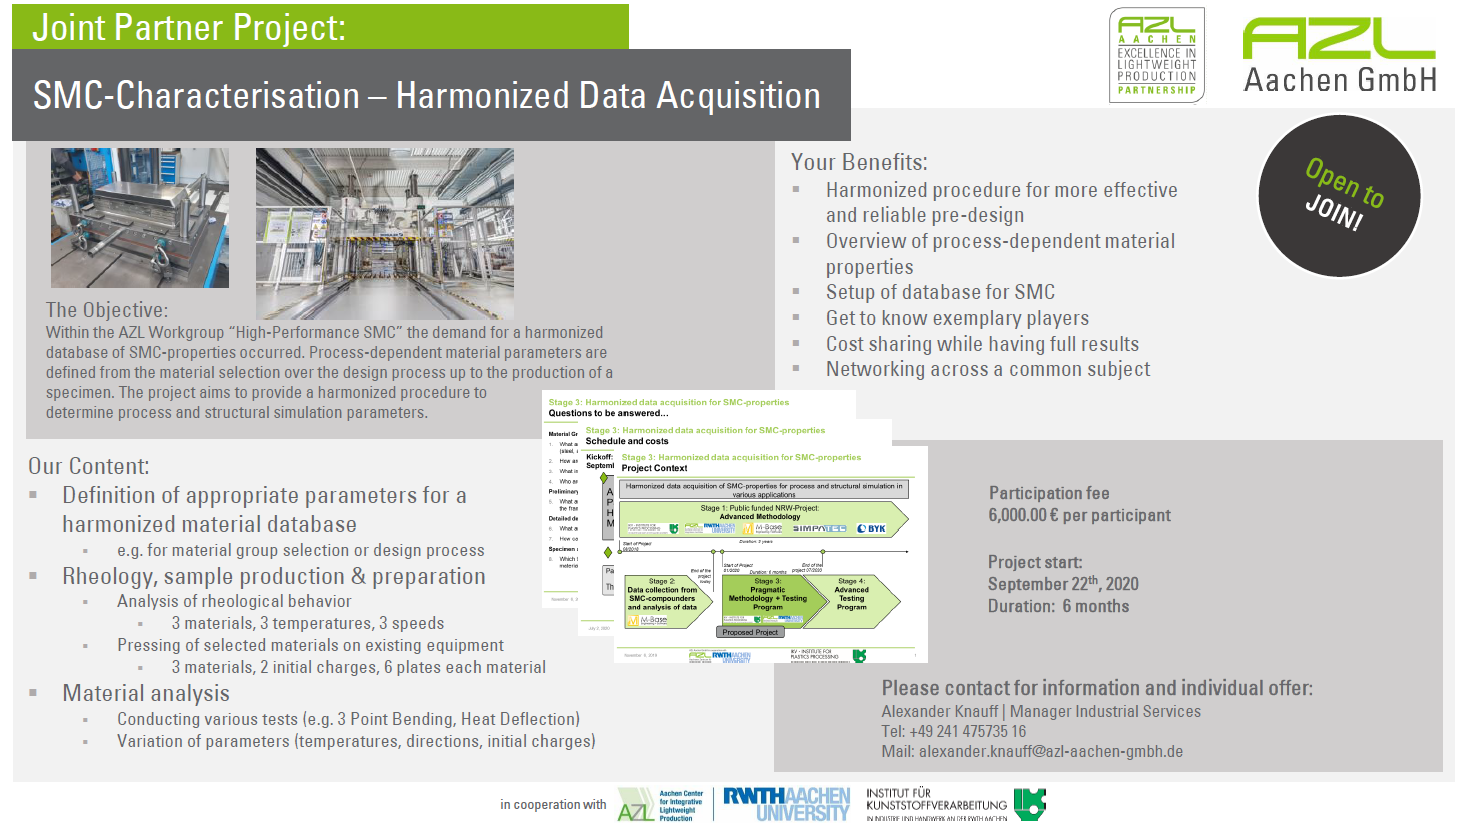 SMC-Characterisation - Harmonized Data Acquisition